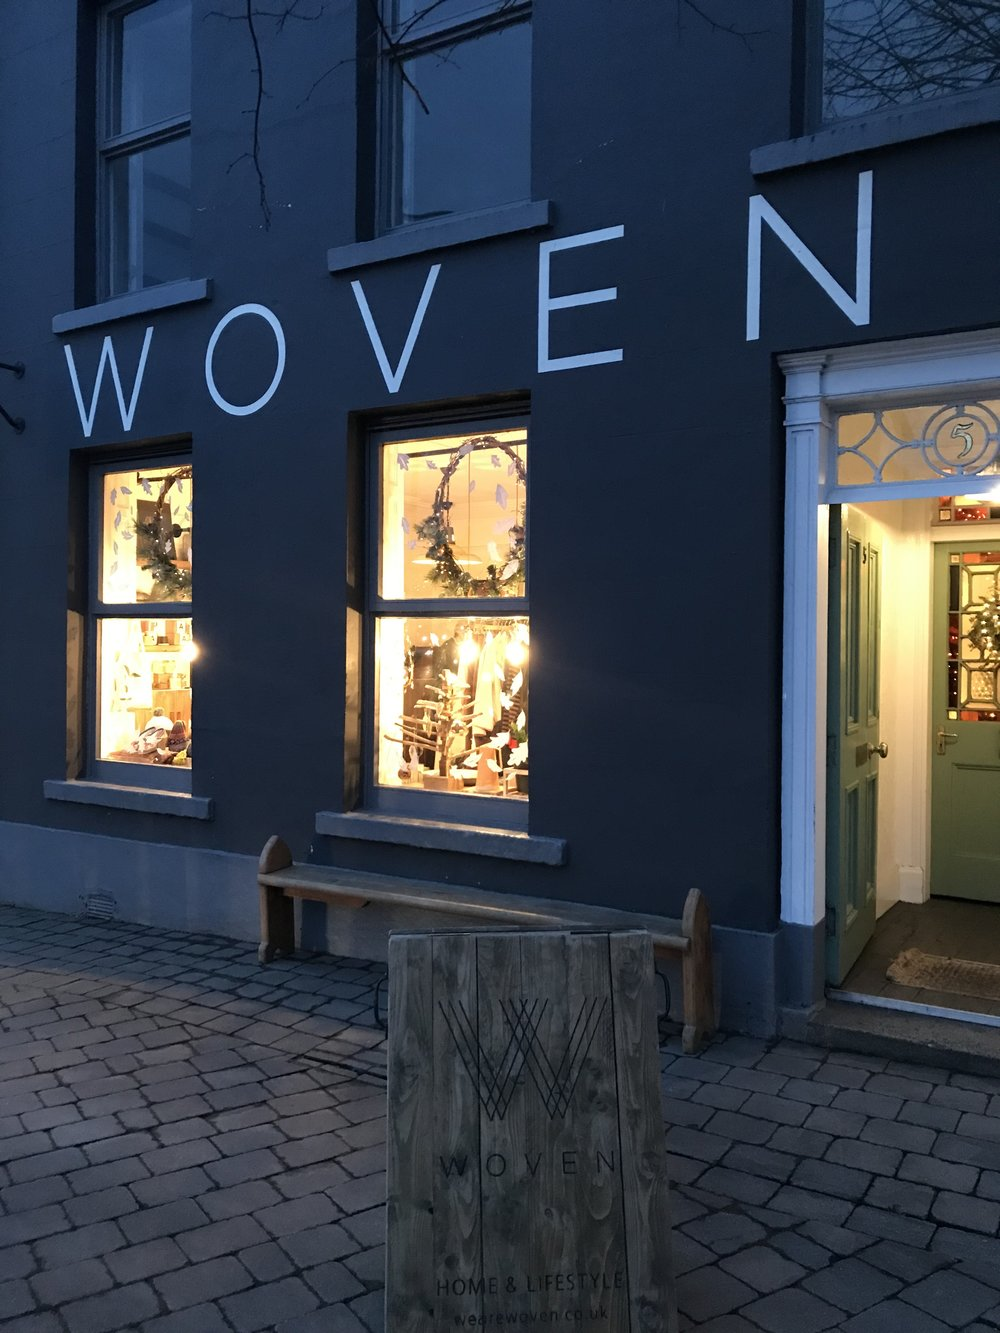 WOVEN - 5a Church Square, BanbridgeNorthern Ireland028 4062 9846